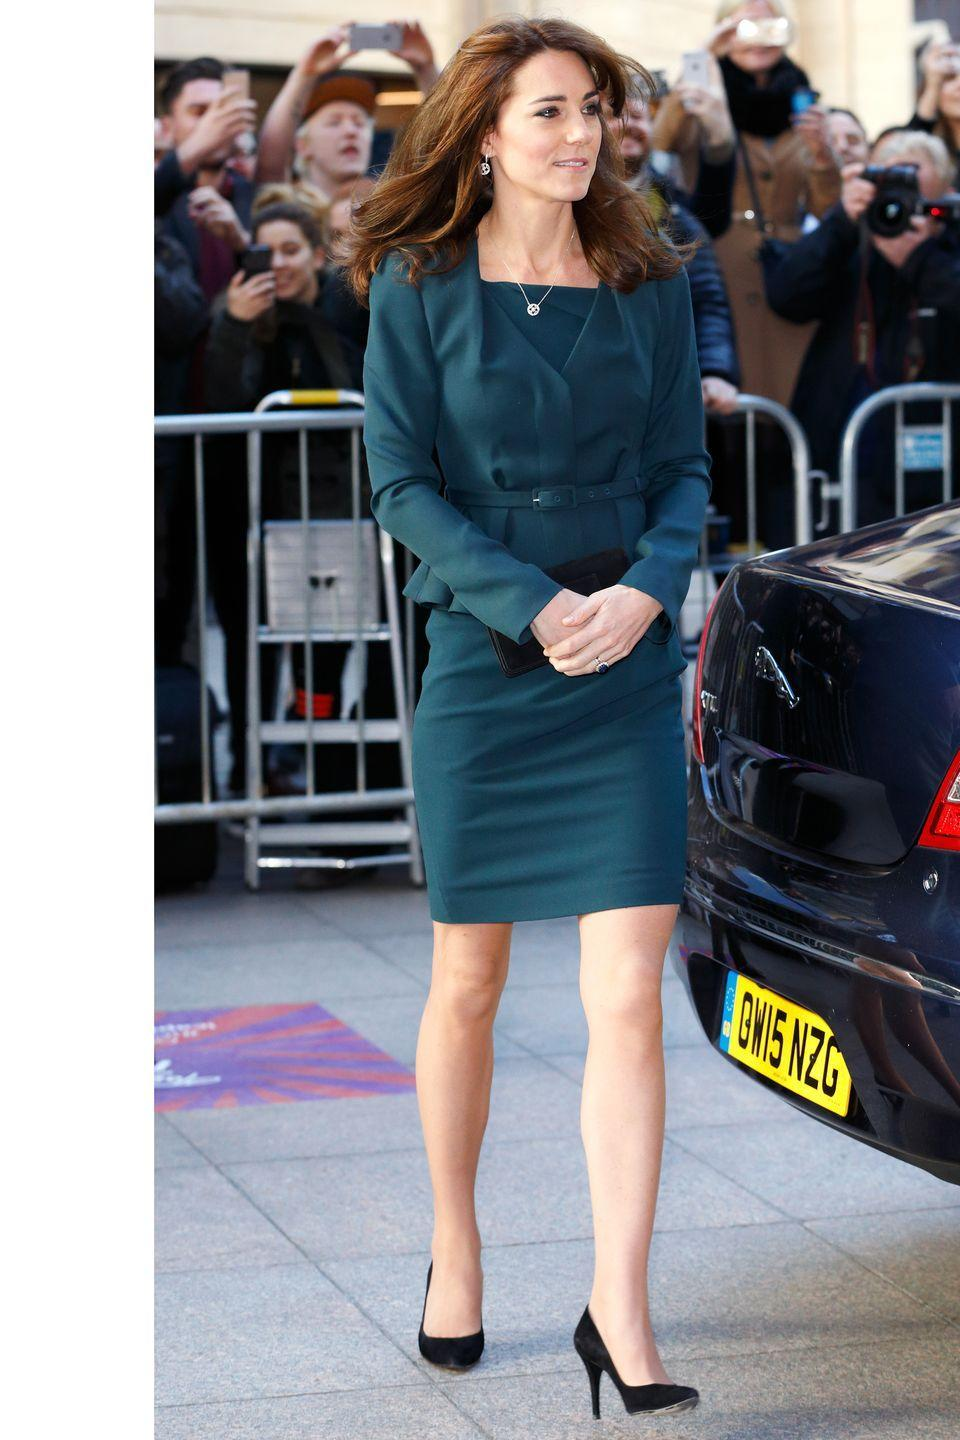 <p>The Duchess arrives at an ICAP charity event in Central London, donning a deep teal suit and pointy black pumps.</p>